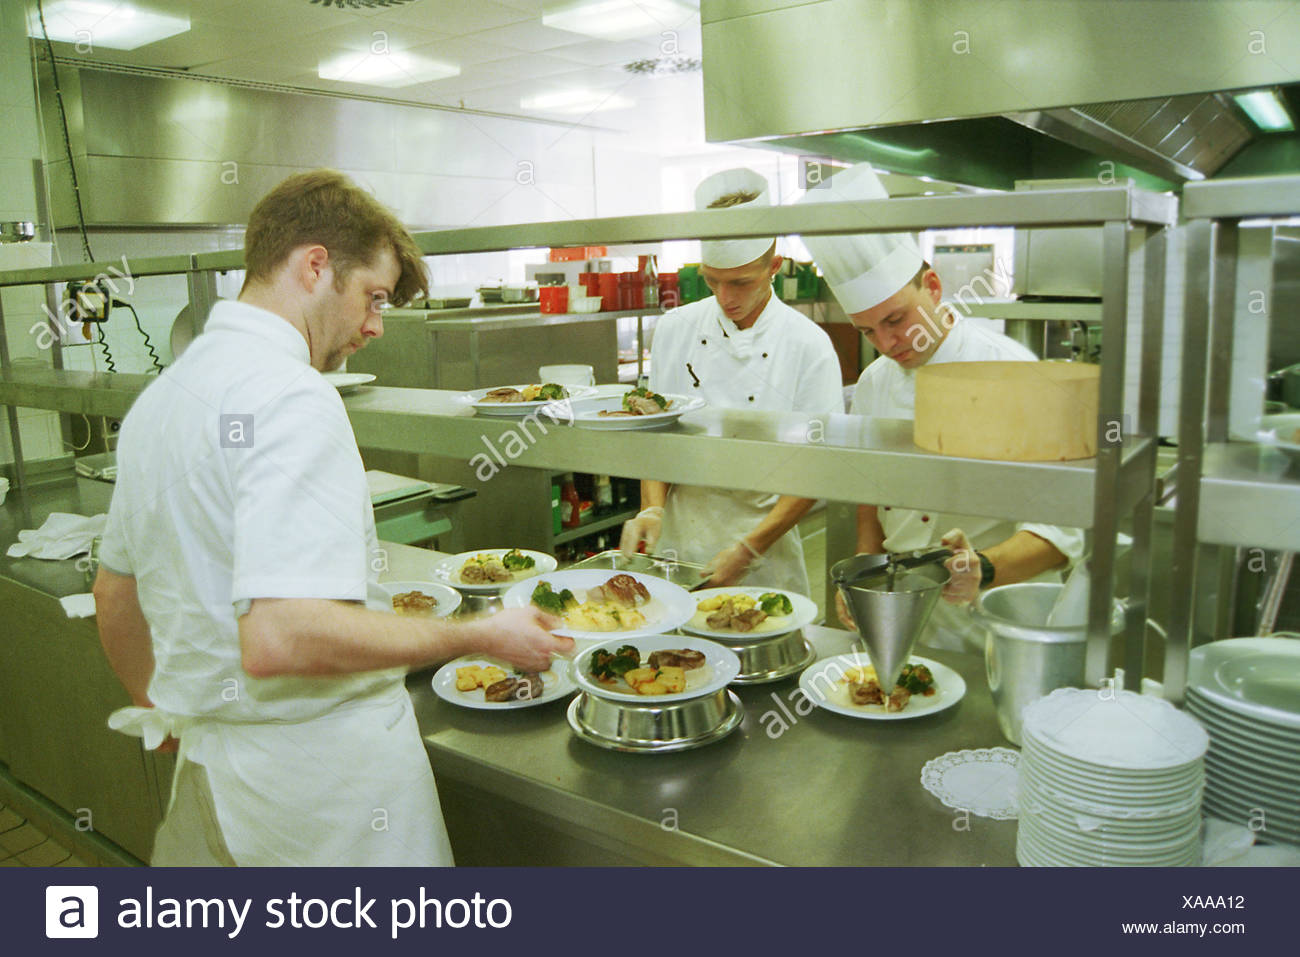 Chefs In Hotelkueche Berlin Stock Photo 281739838 Alamy